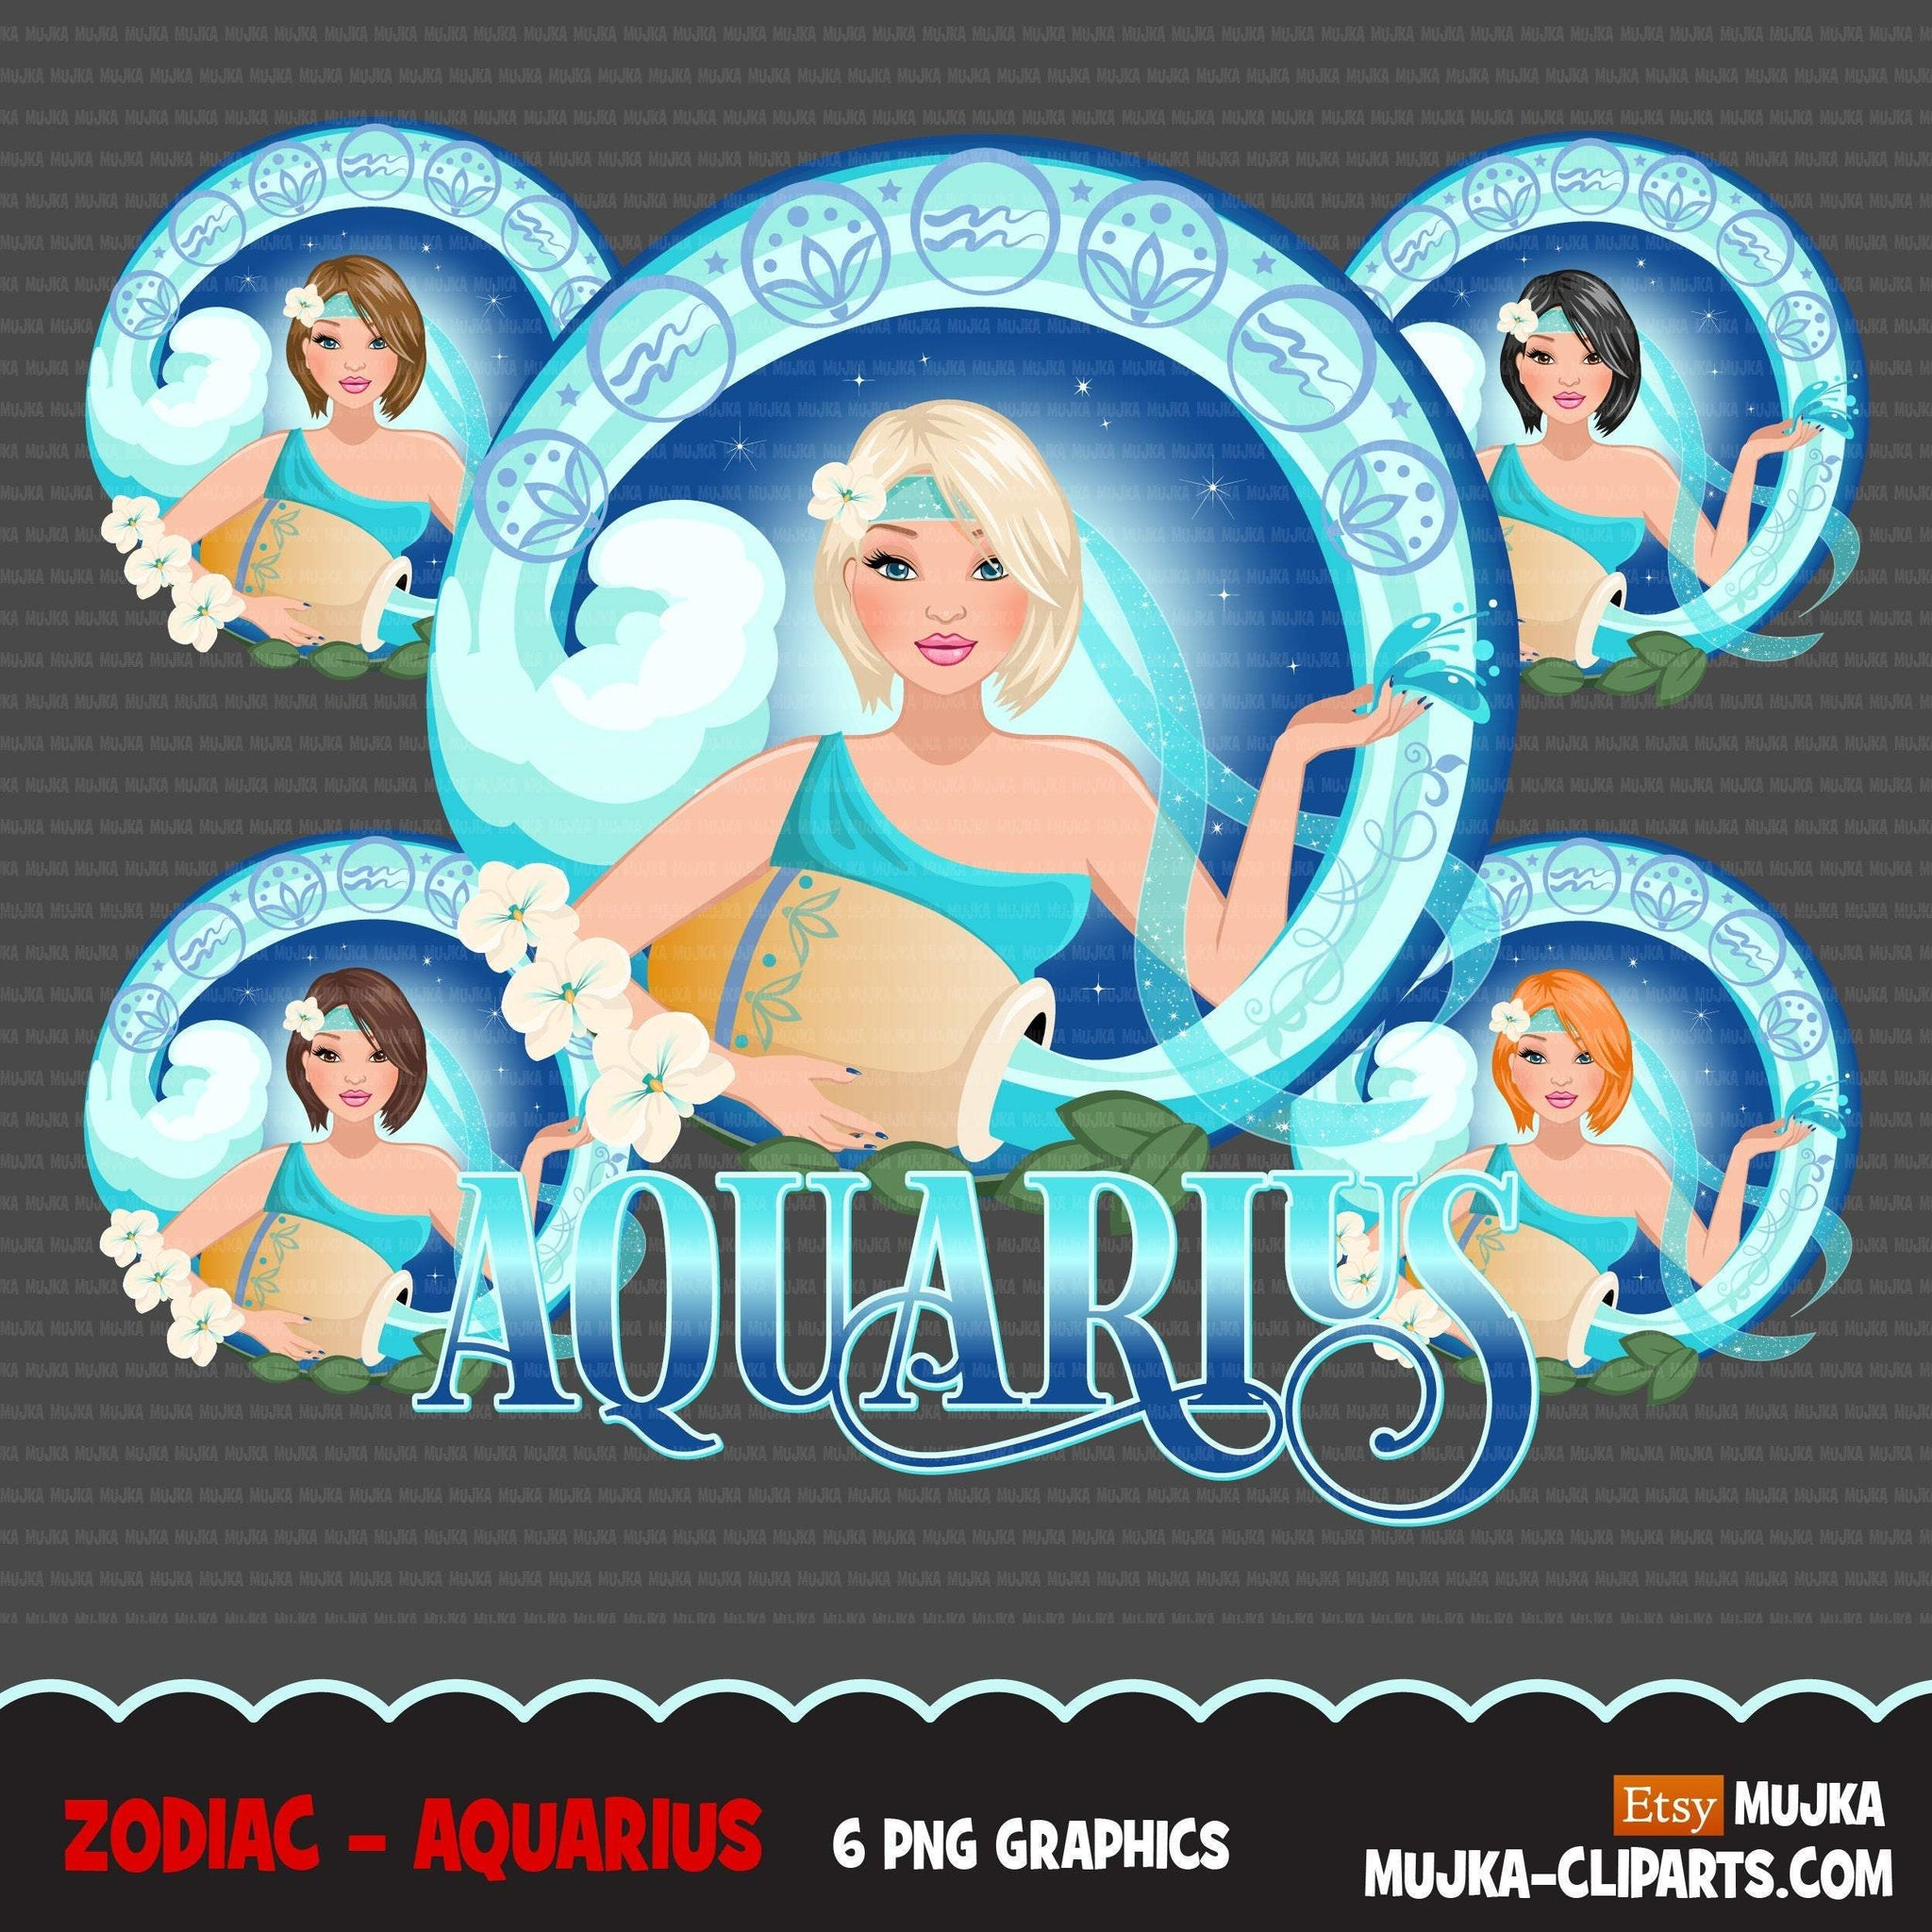 Zodiac Aquarius Clipart, Png digital download, Sublimation Graphics for Cricut & Cameo, Caucasian Short Hair Woman Horoscope sign designs